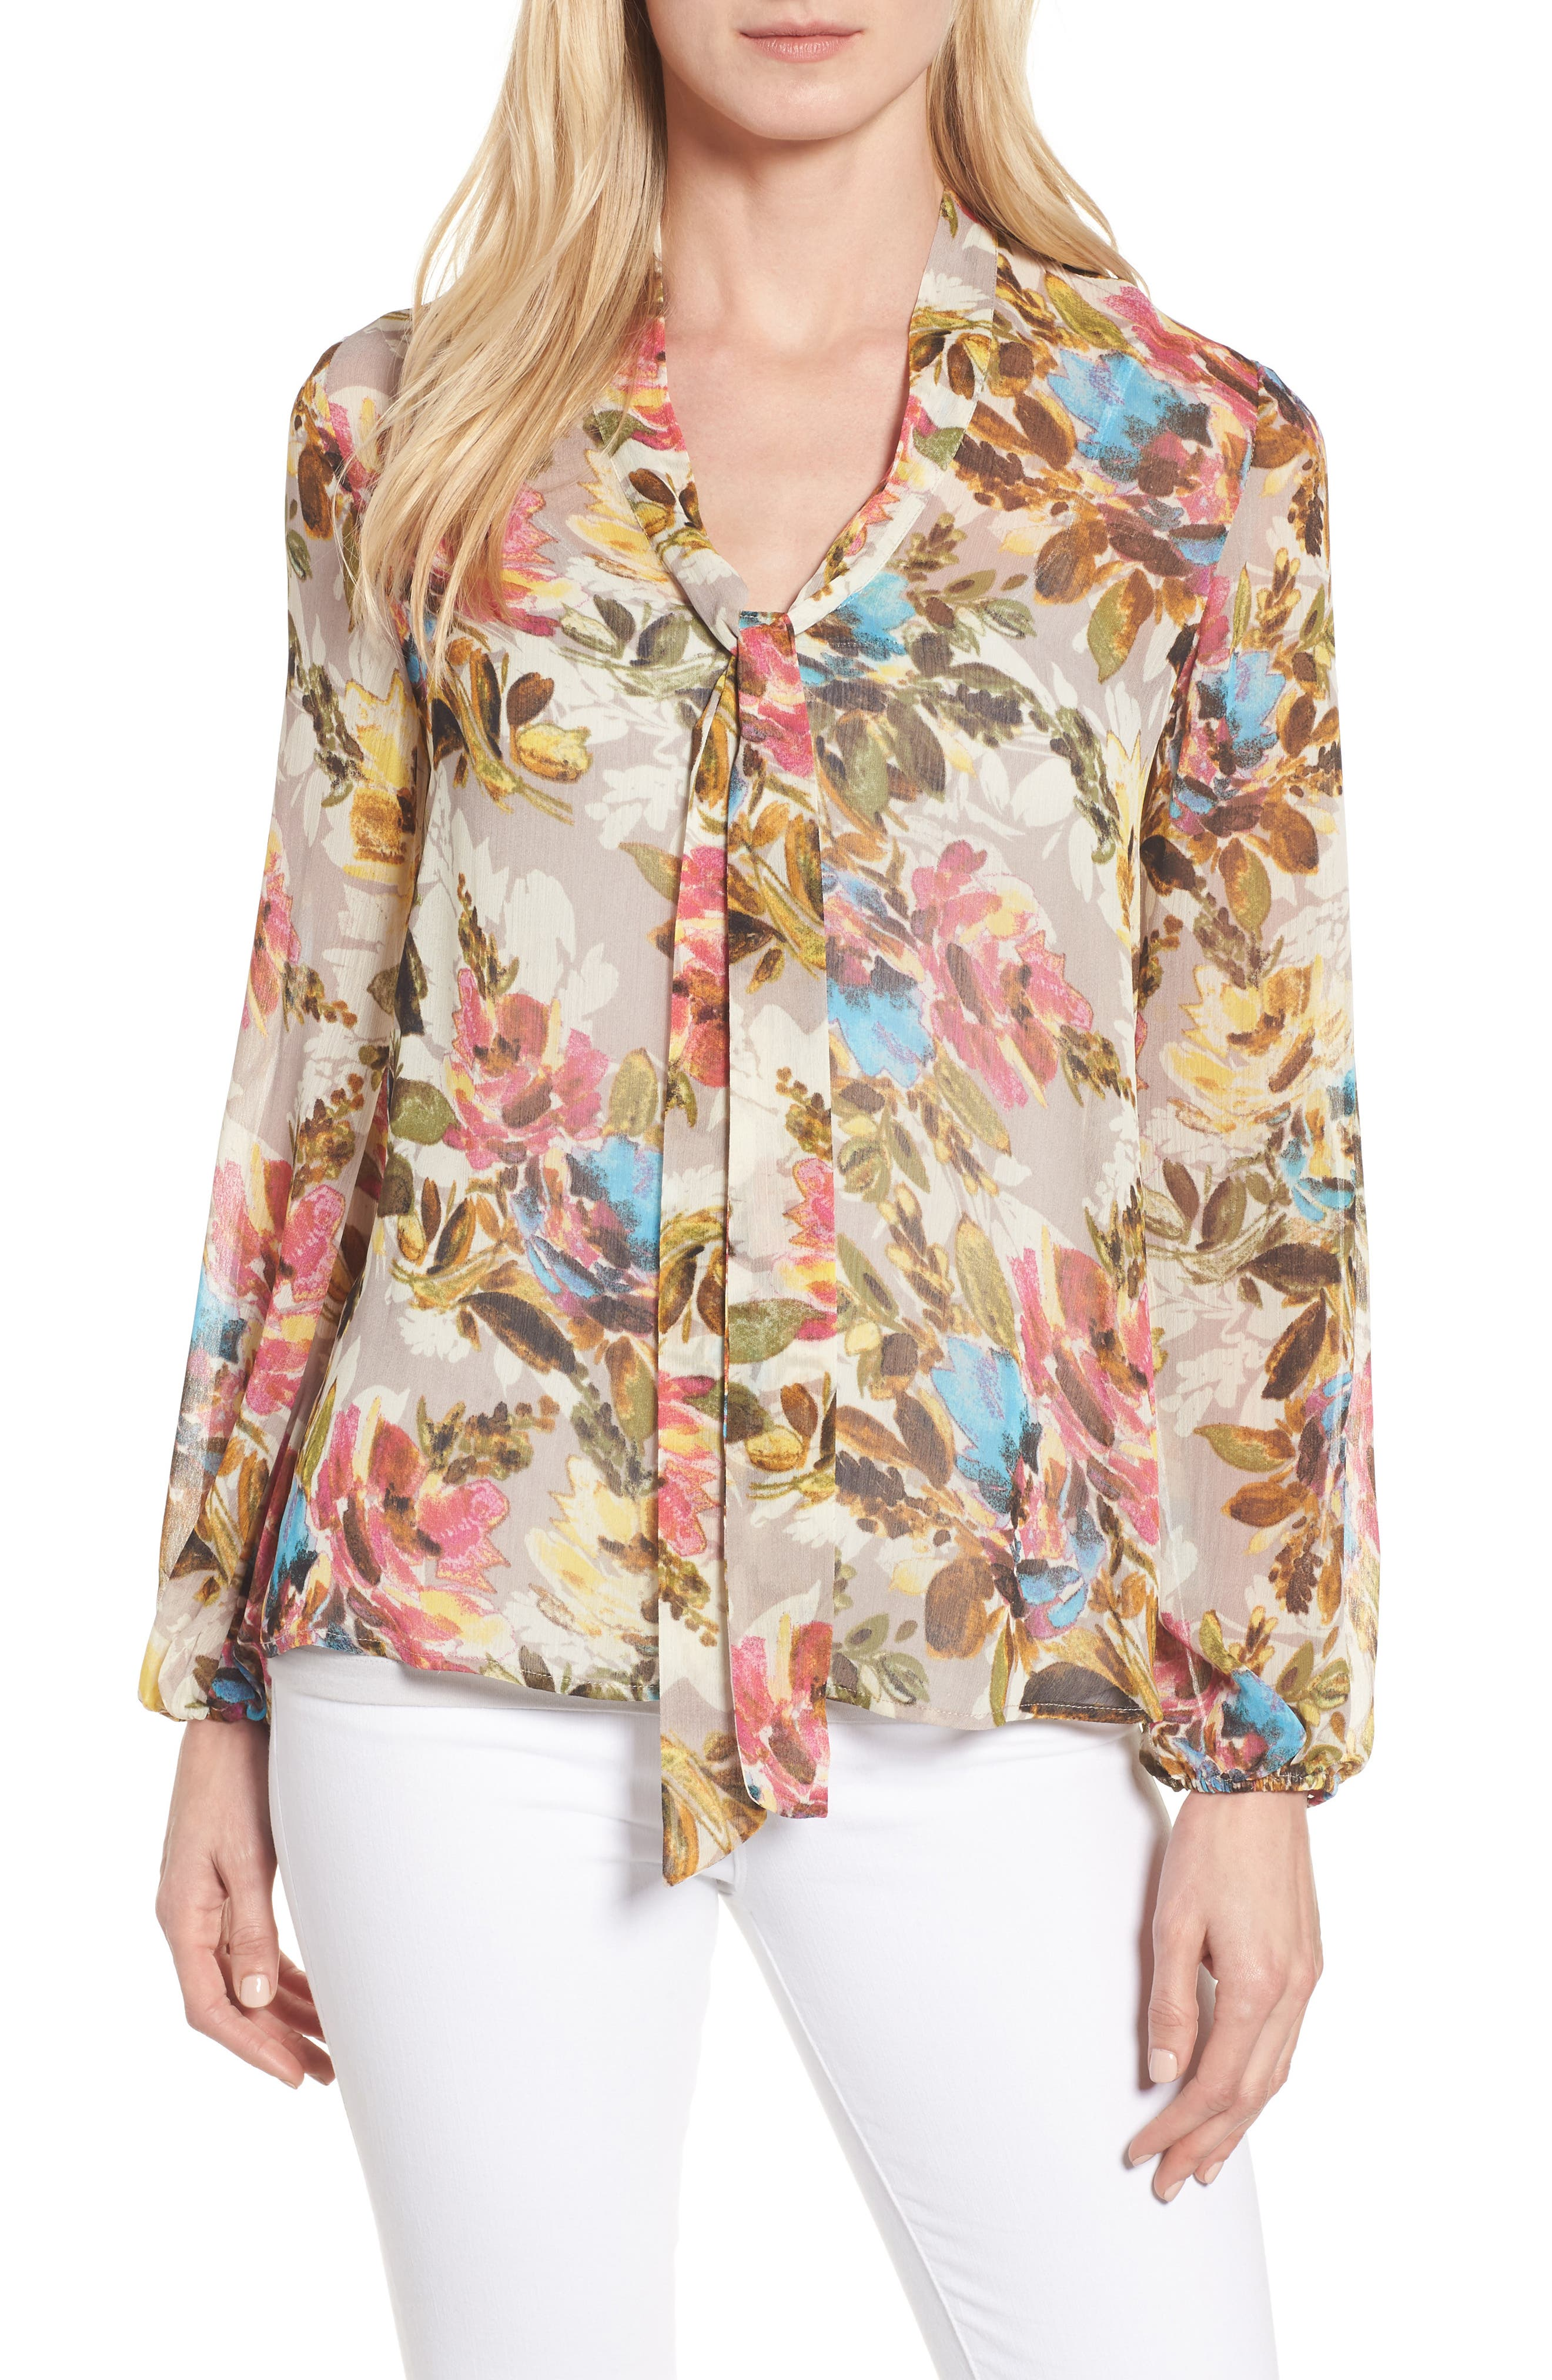 KUT from the Kloth Chie Print Tie Neck Blouse